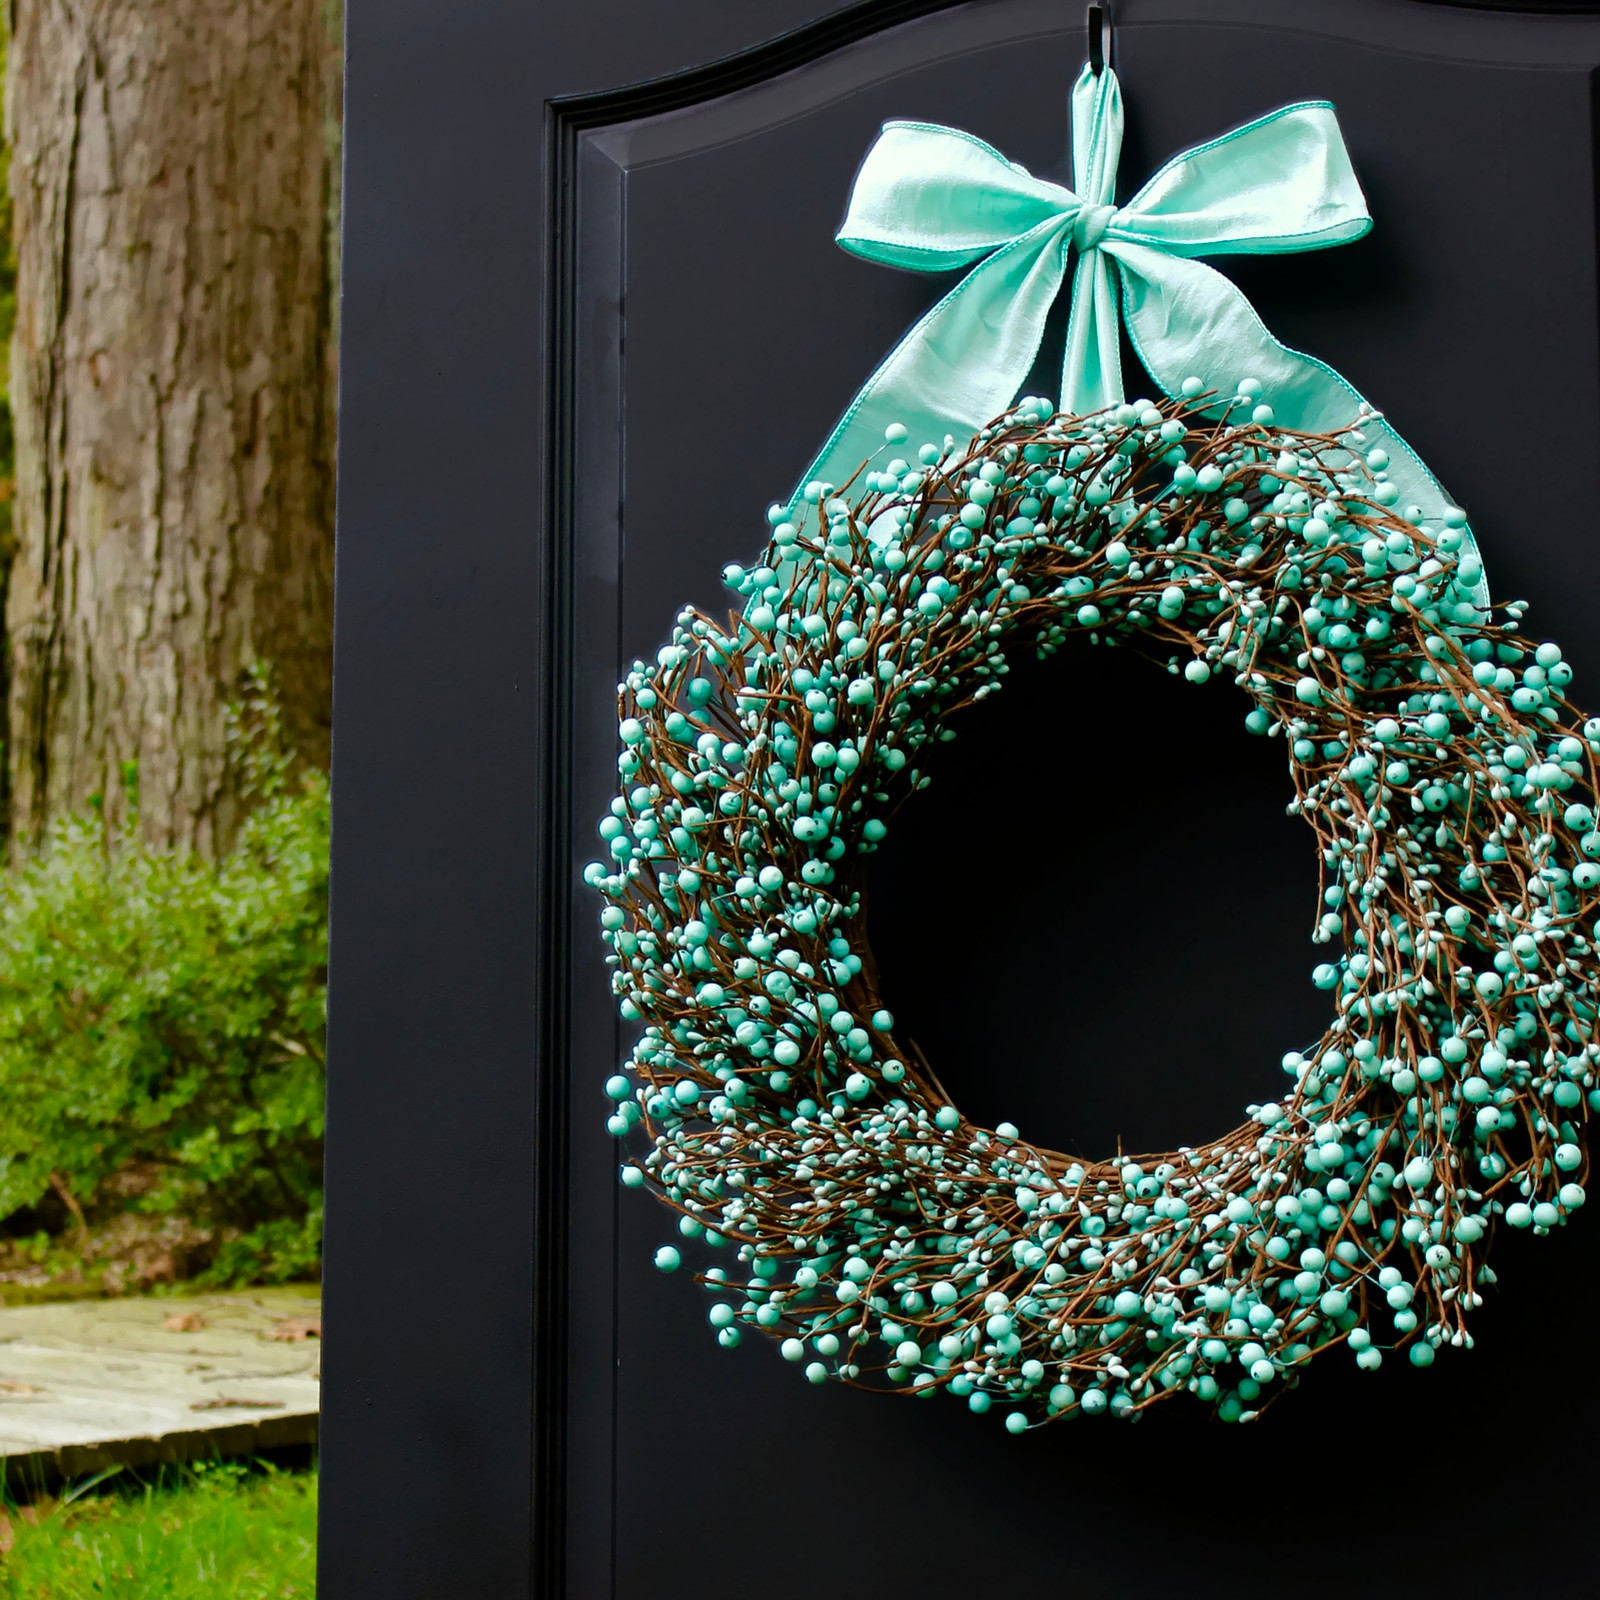 Turquoise Wreath - Robins Egg Blue Wreath